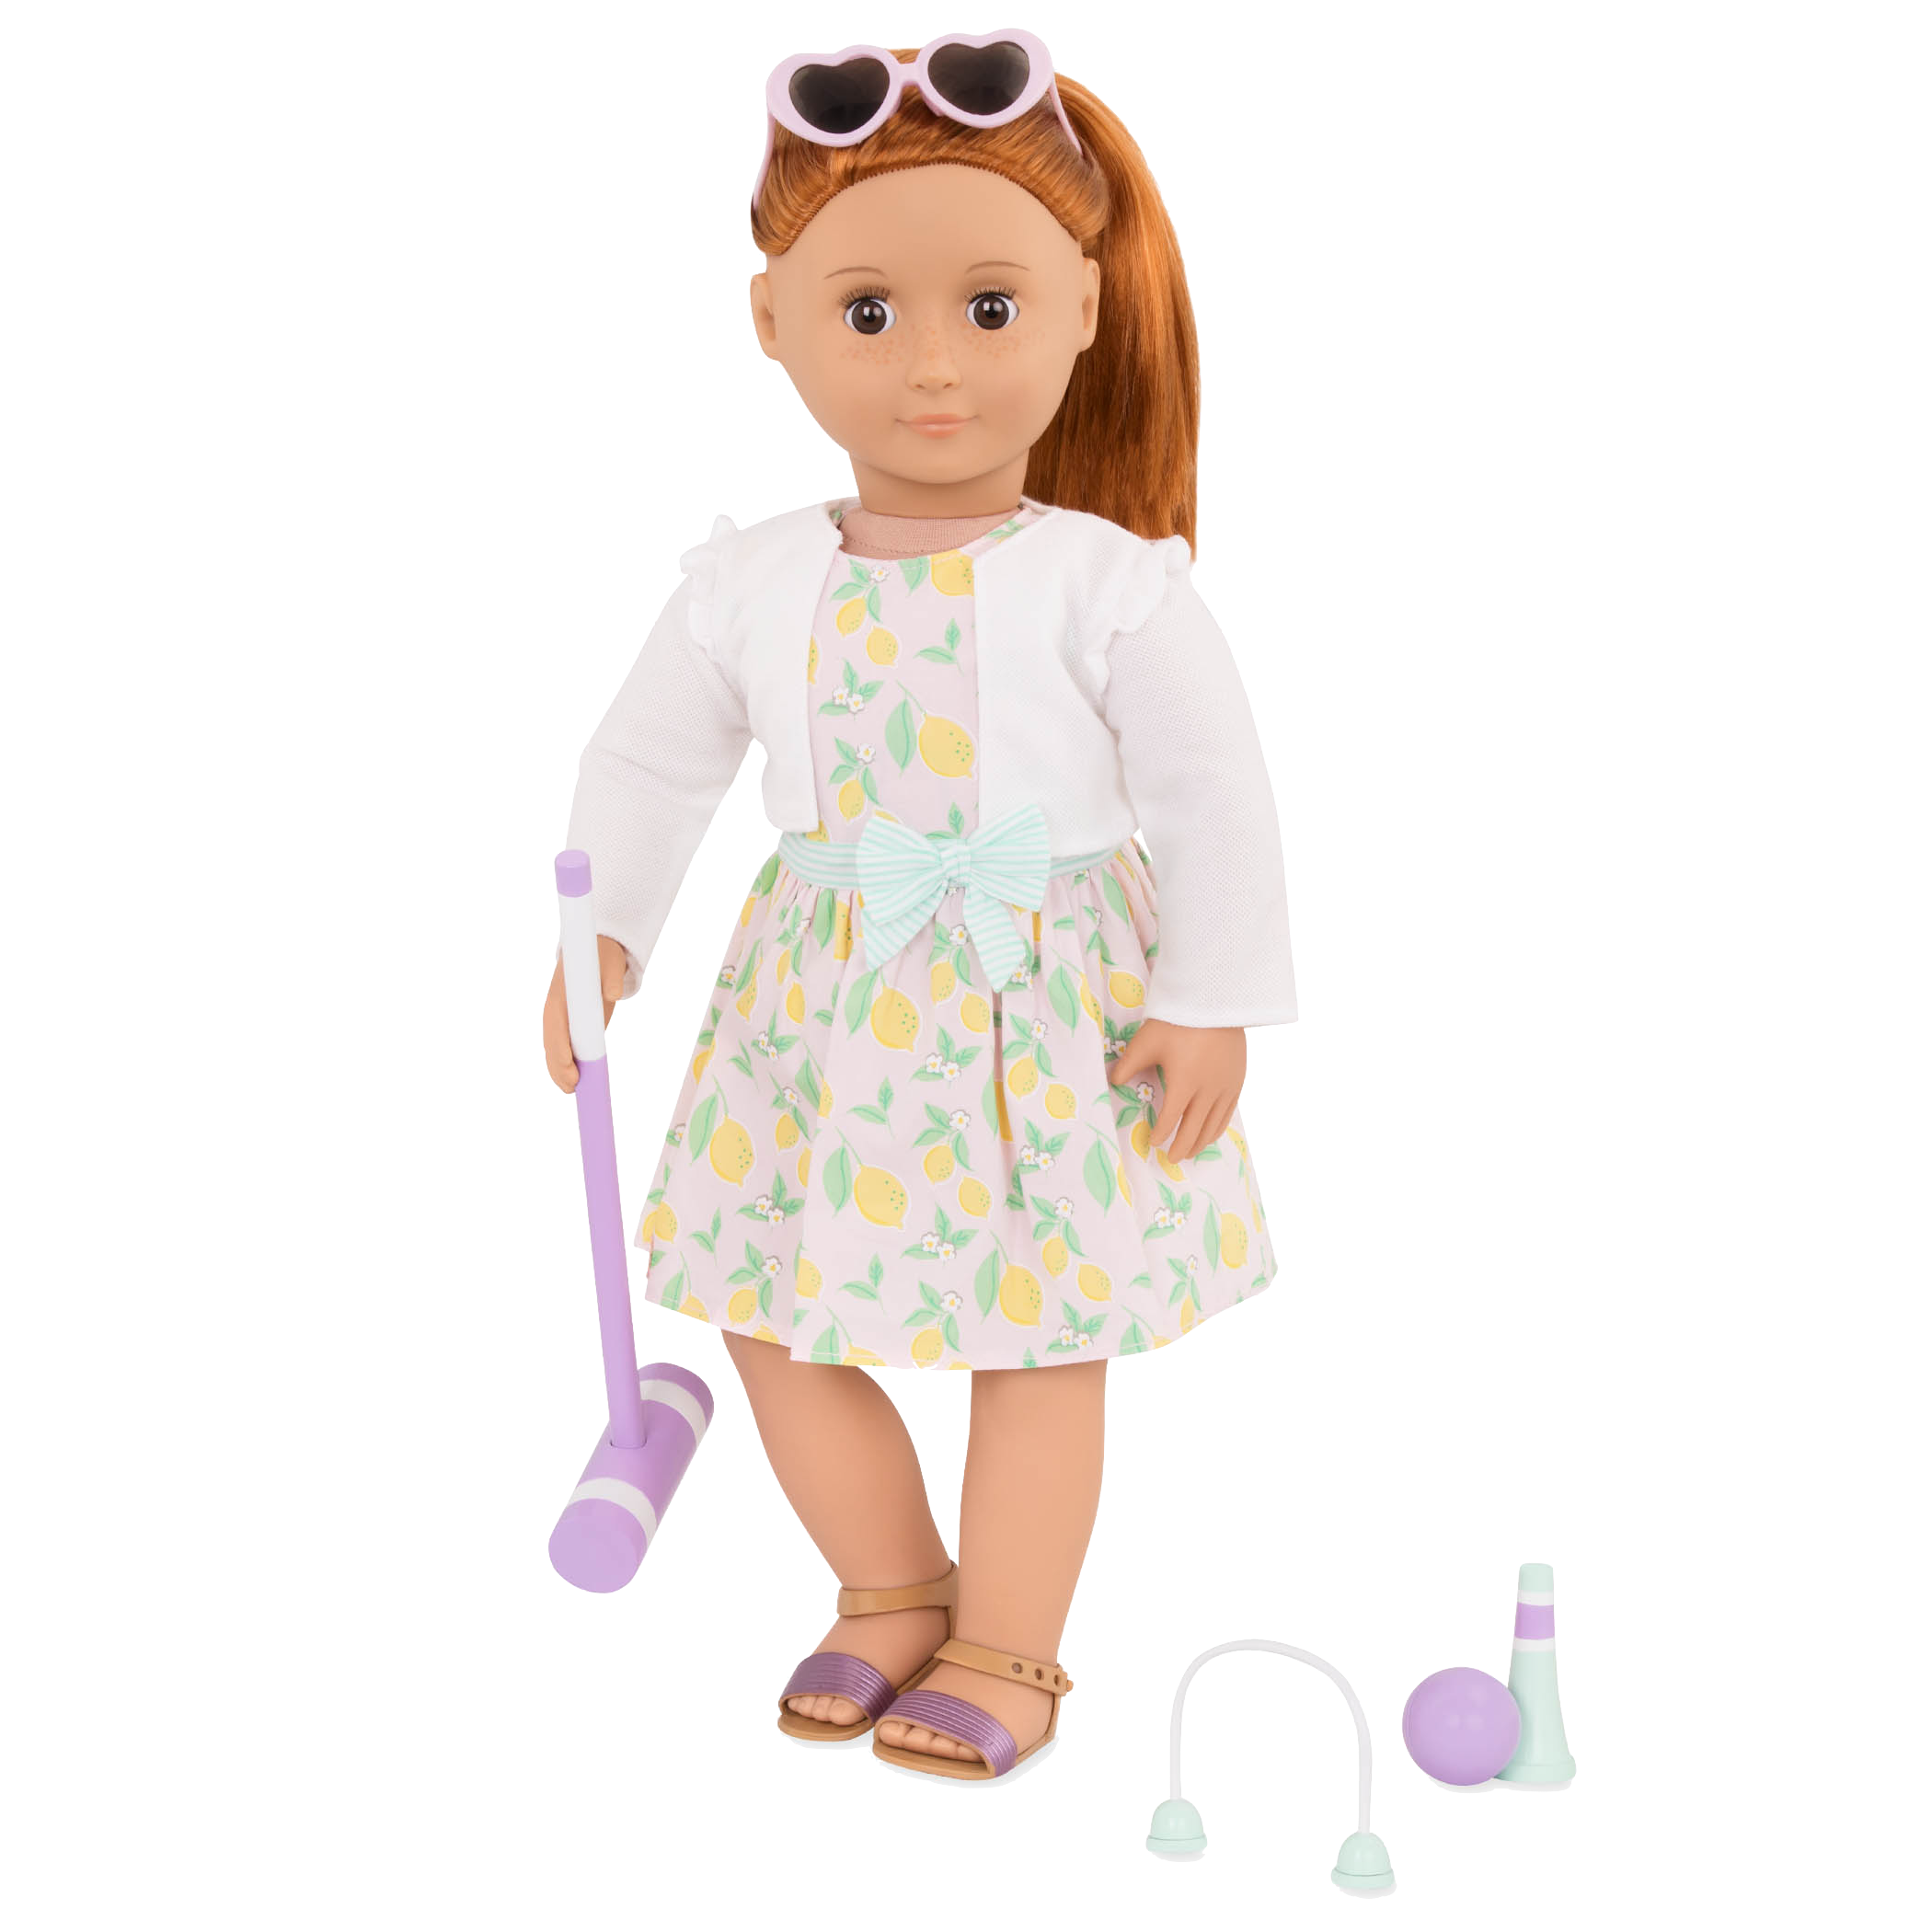 Croquet Play outfit Noa holding mallet